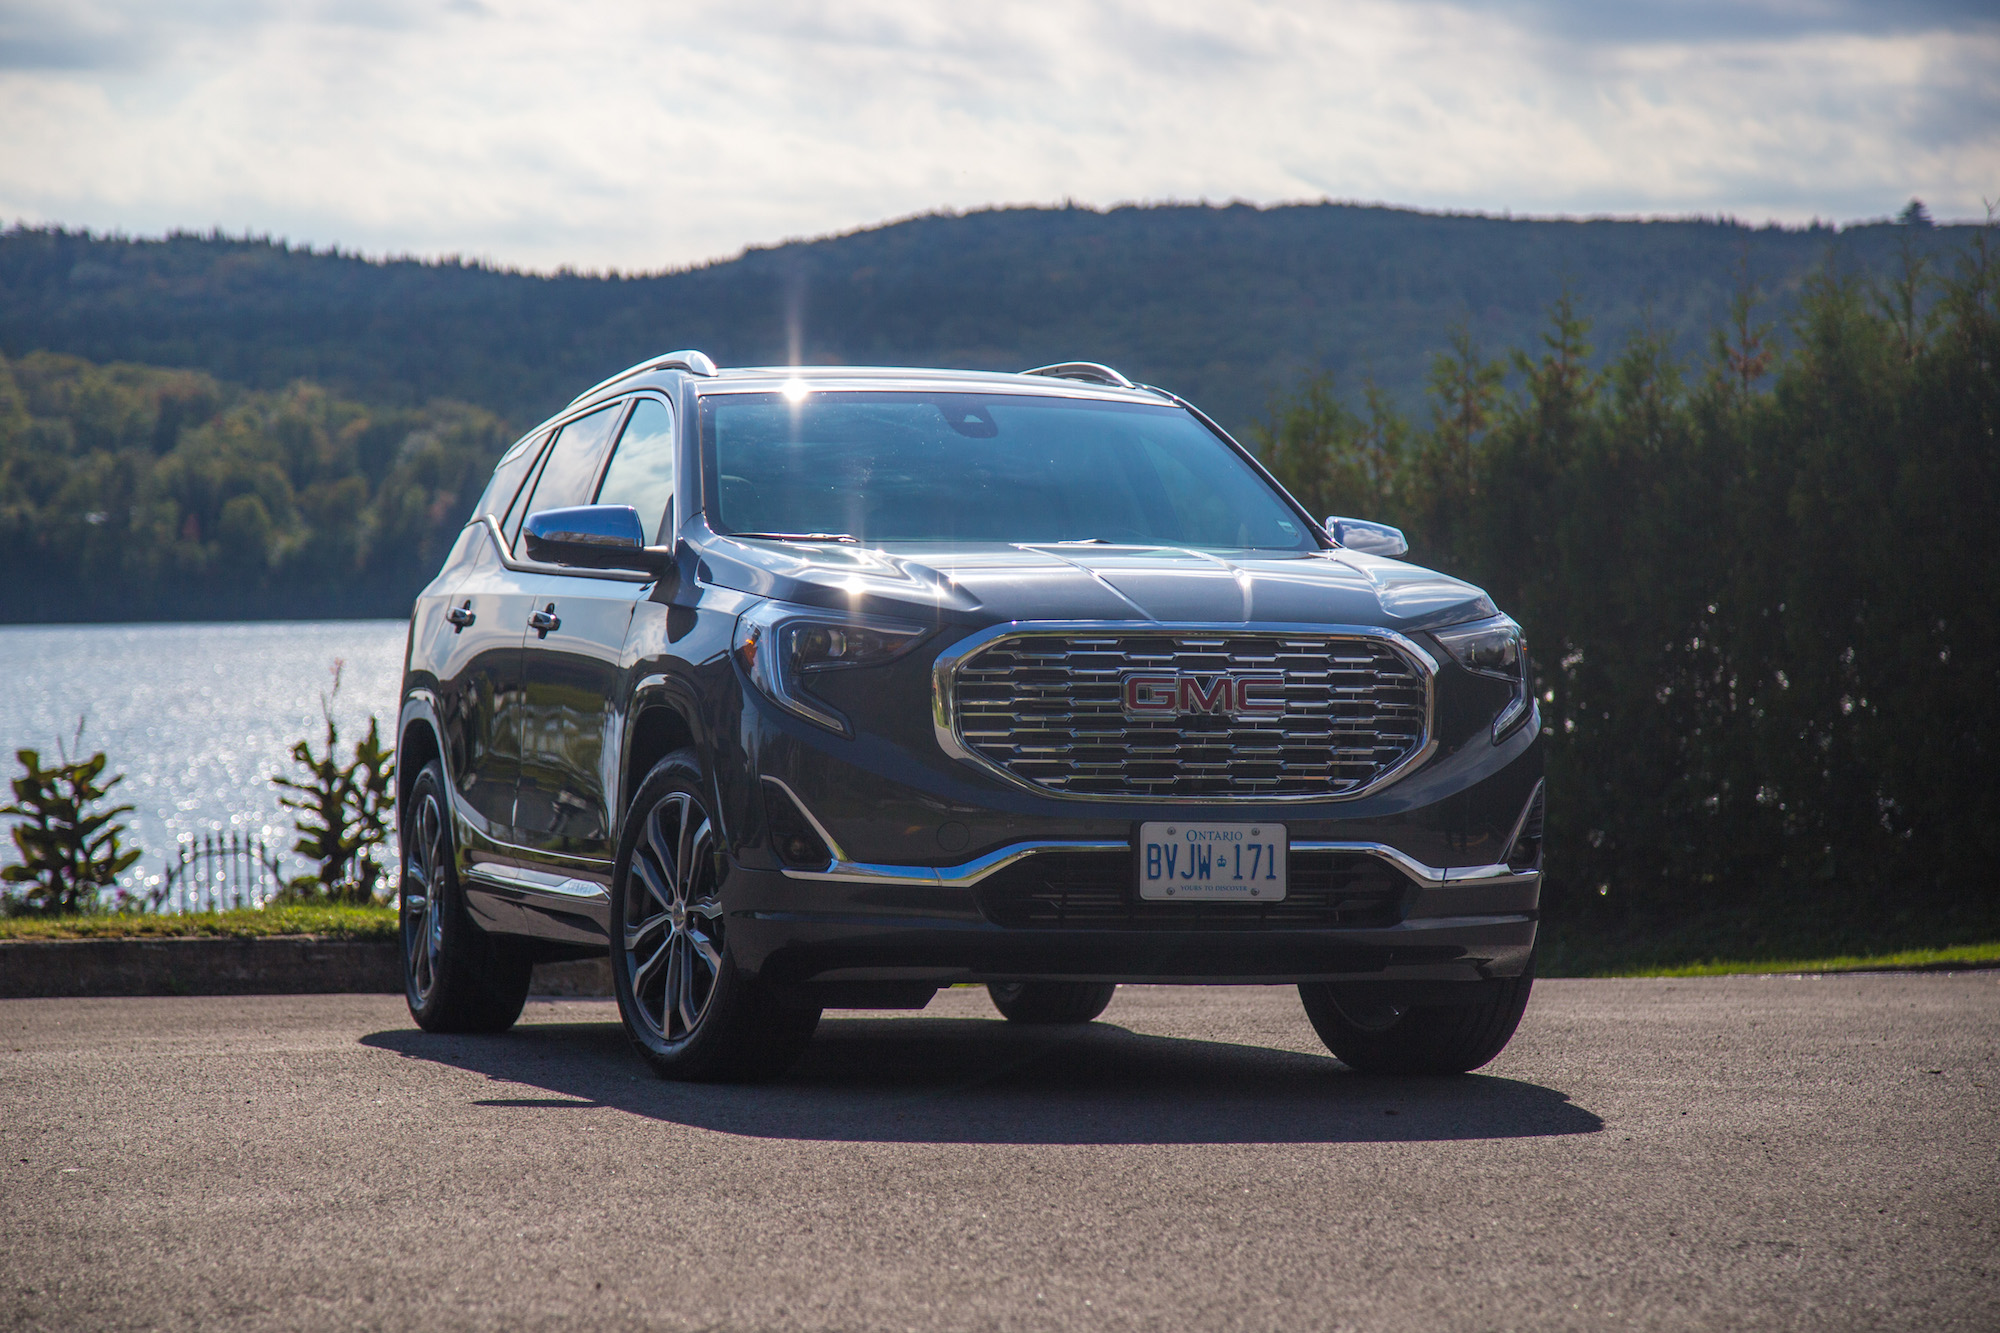 2018 GMC Terrain Diesel:  Review, Price >> First Drive: 2018 GMC Terrain | Canadian Auto Review